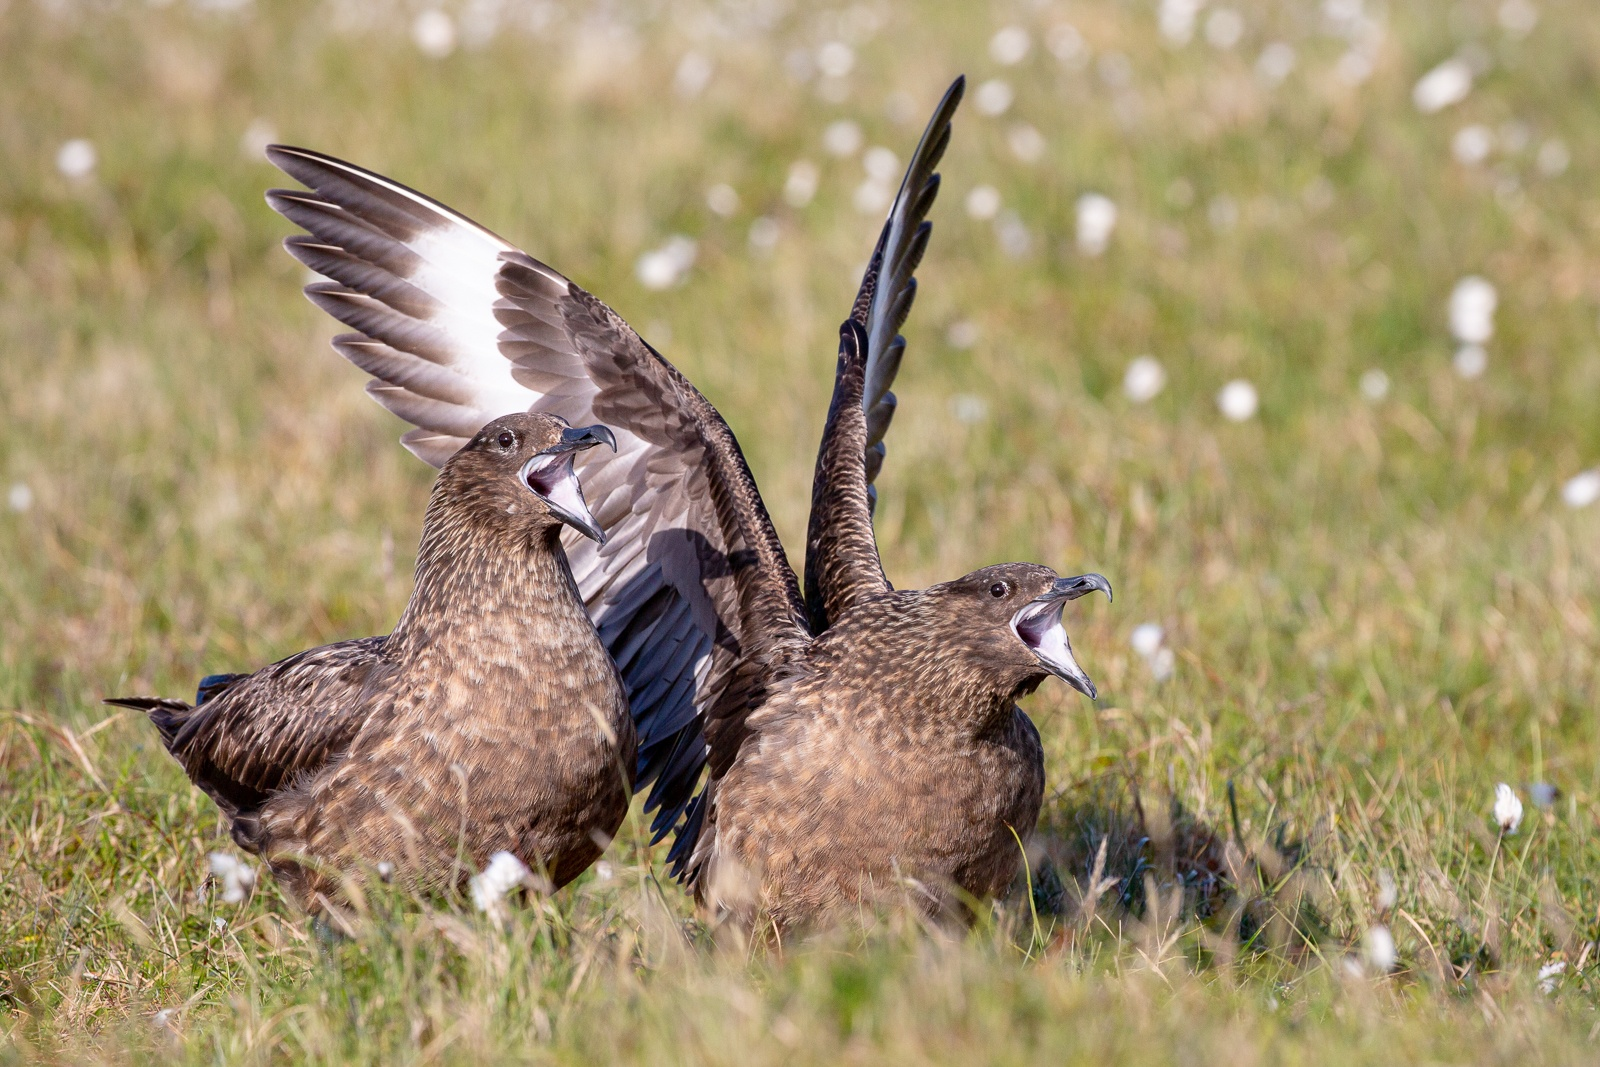 two great skua birds sitting together in grass